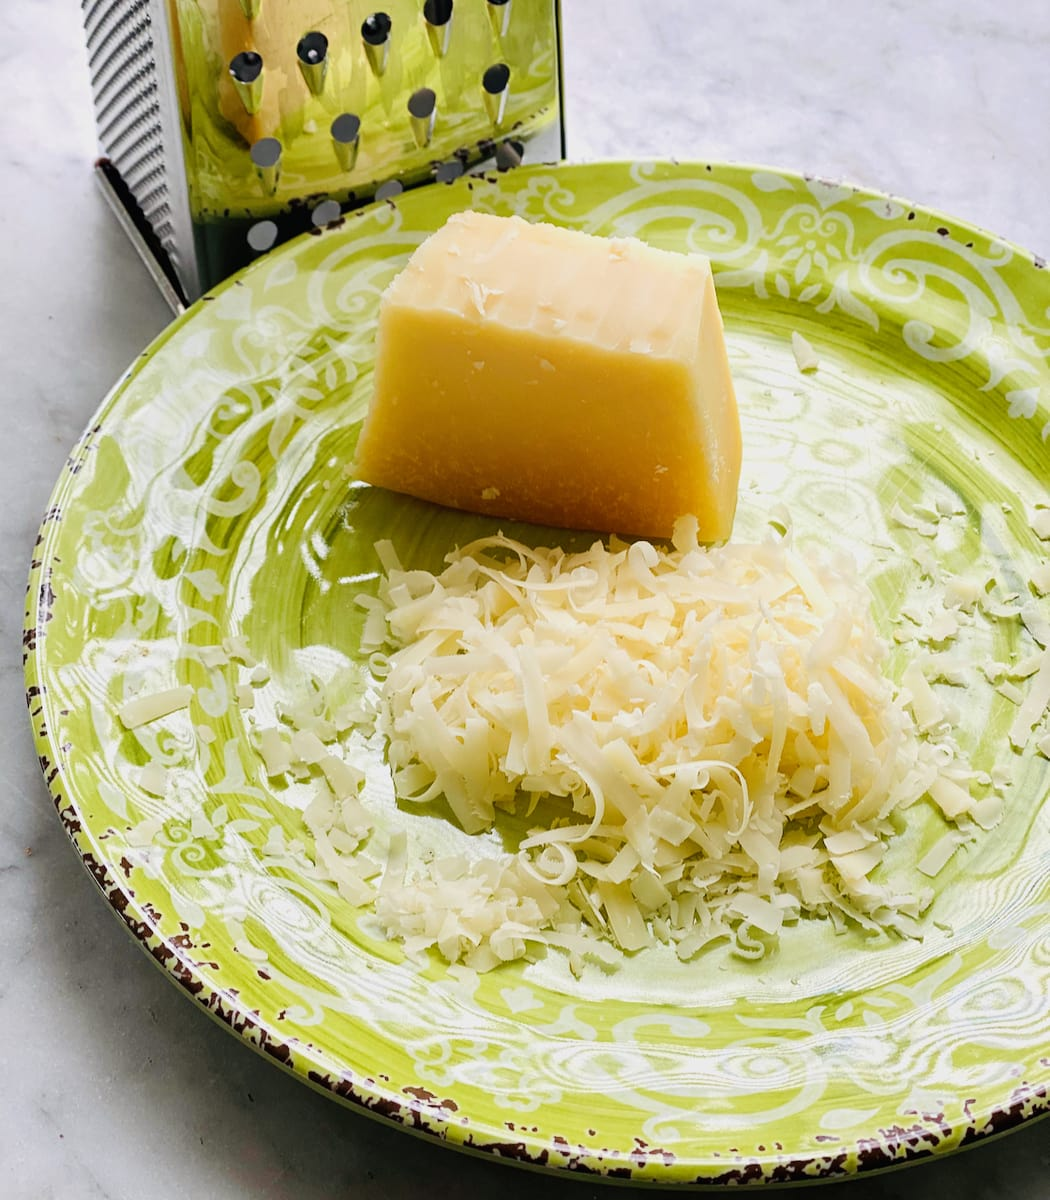 a wedge of parmesan cheese being grated onto a green plate